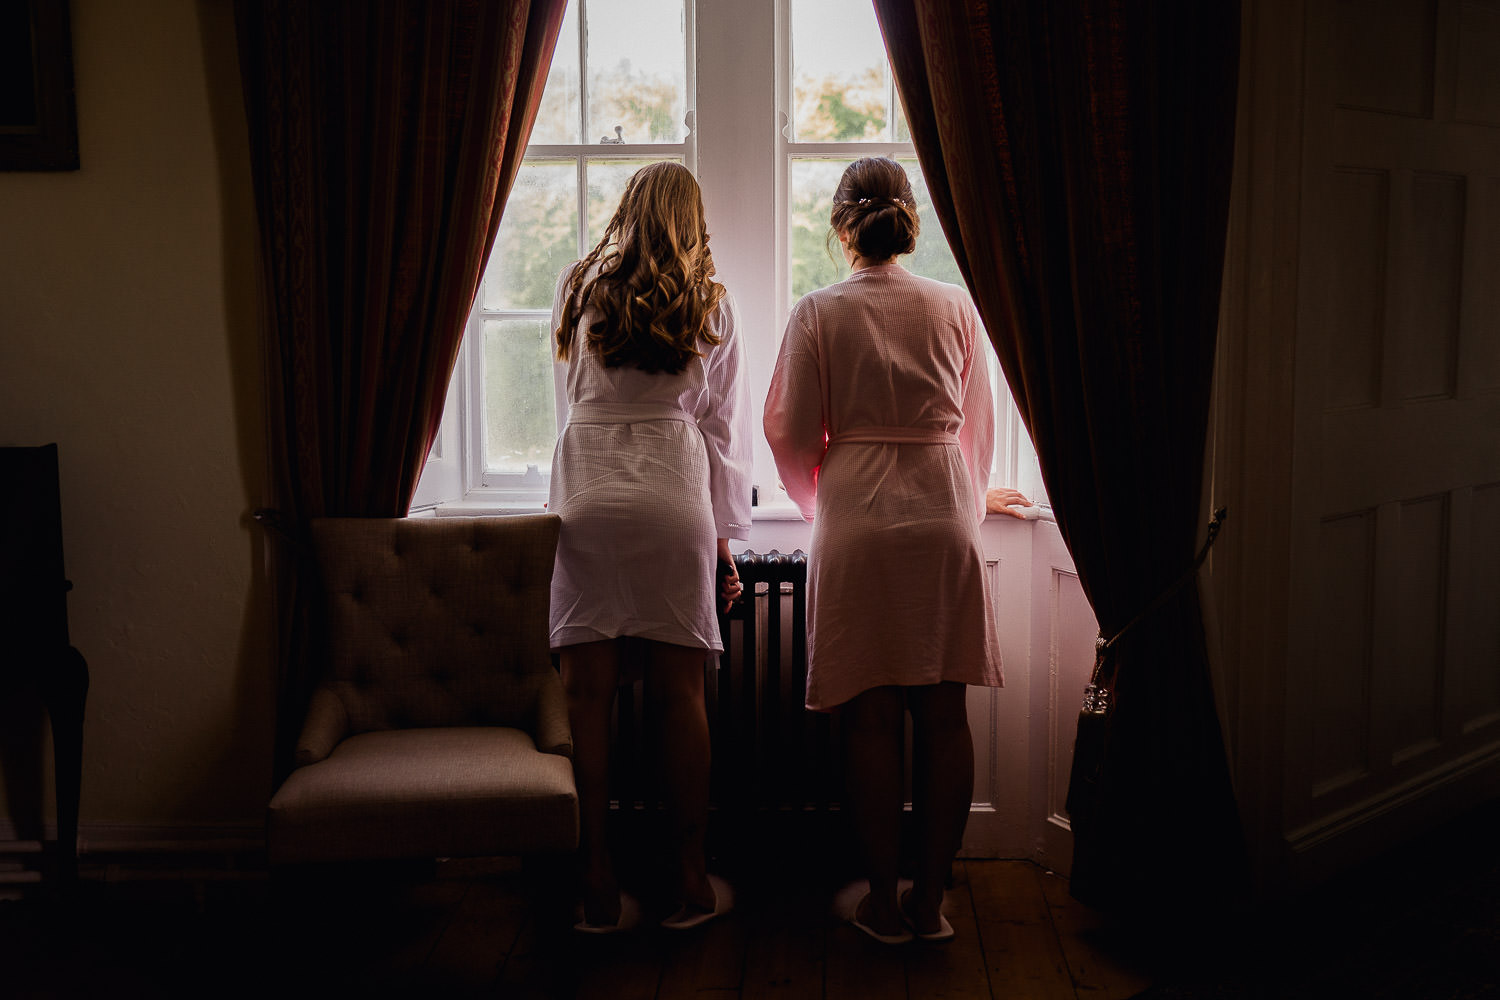 Bride and bridesmaid looking out a window